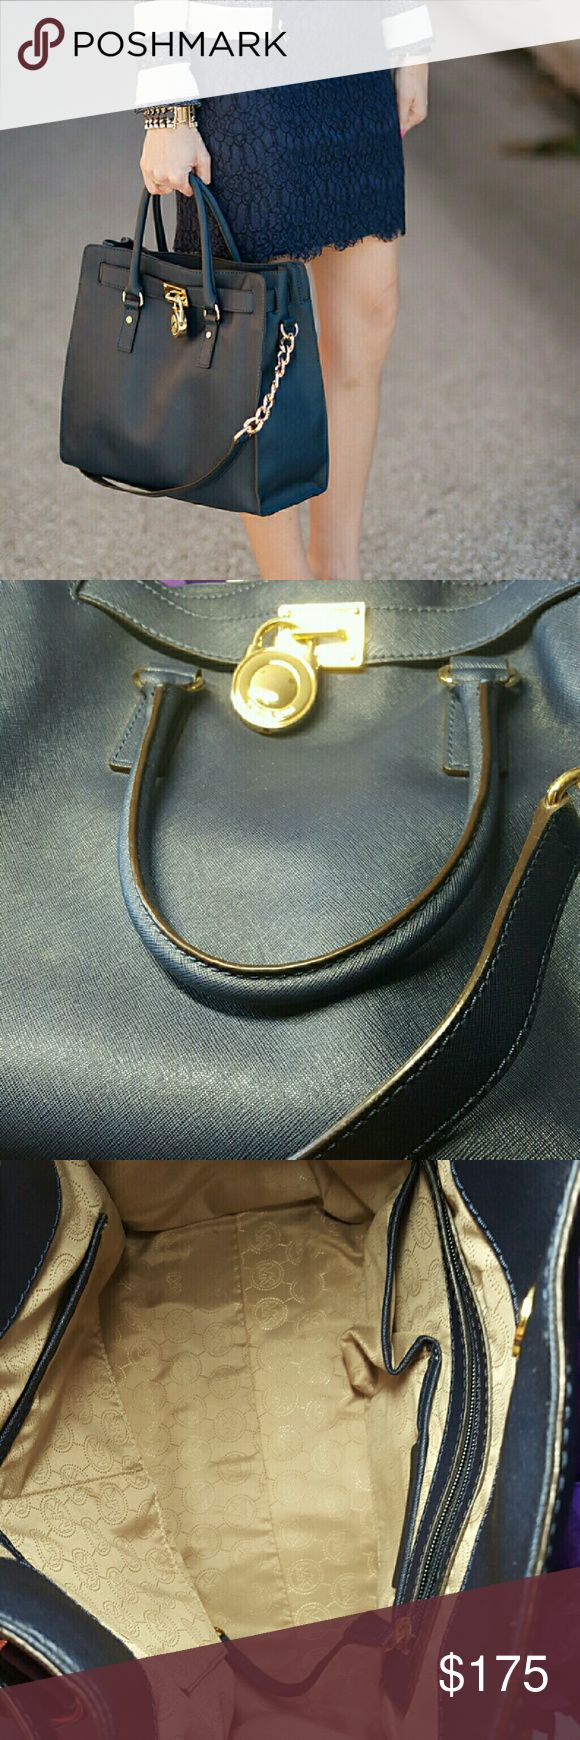 Michael Kors Navy Blue Hamilton bag Almost brand new. Used a few times. Gold hardware. Includes dust bag. Large size bag. Missing the dust bag. Bag is in almost perfect condition. Great deal. Michael Kors Bags